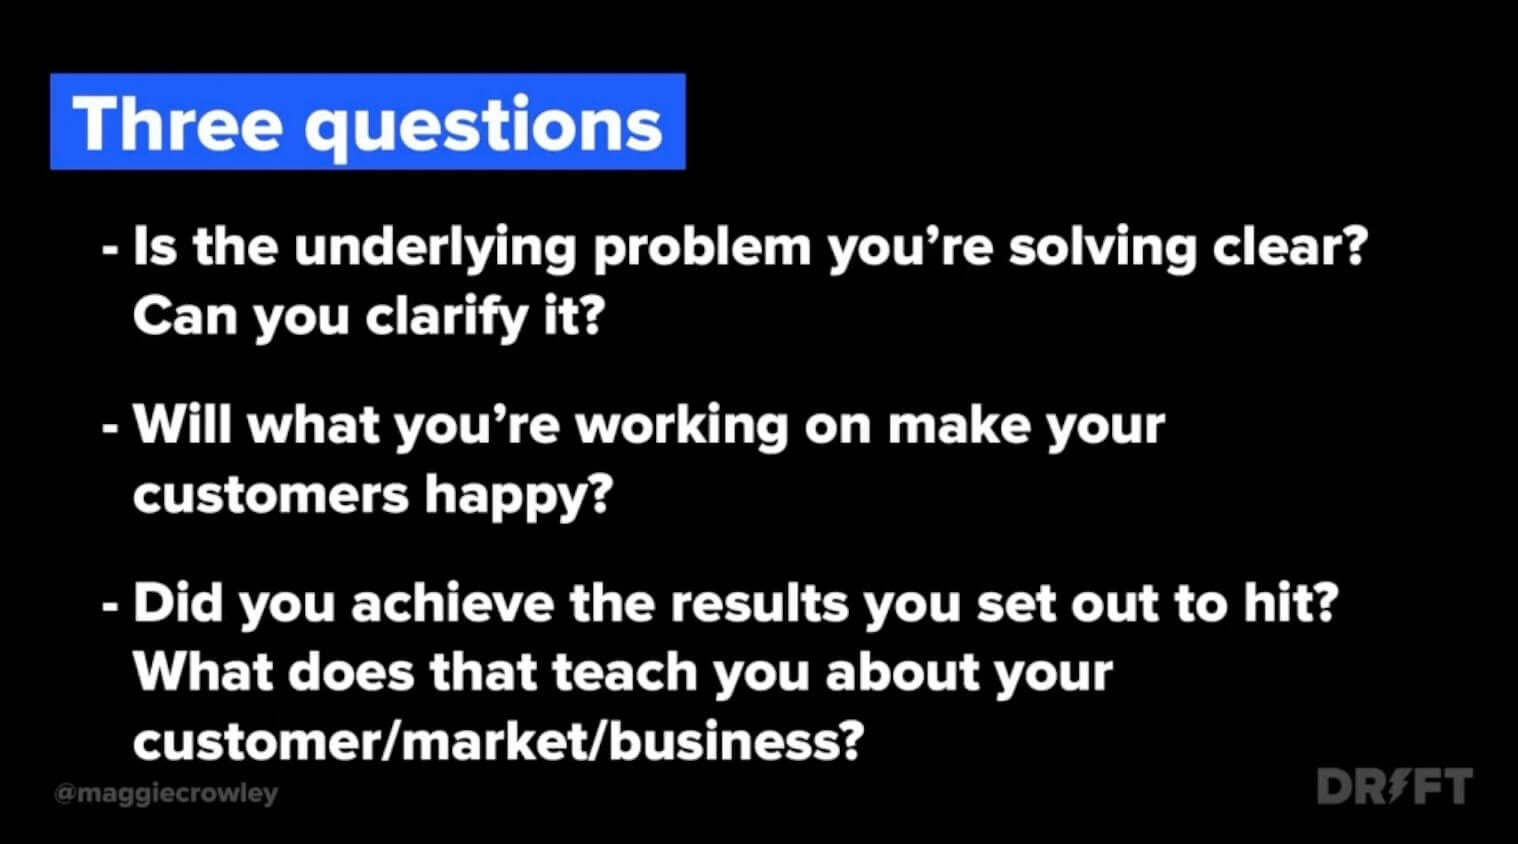 three questions to ask about customer outcomes